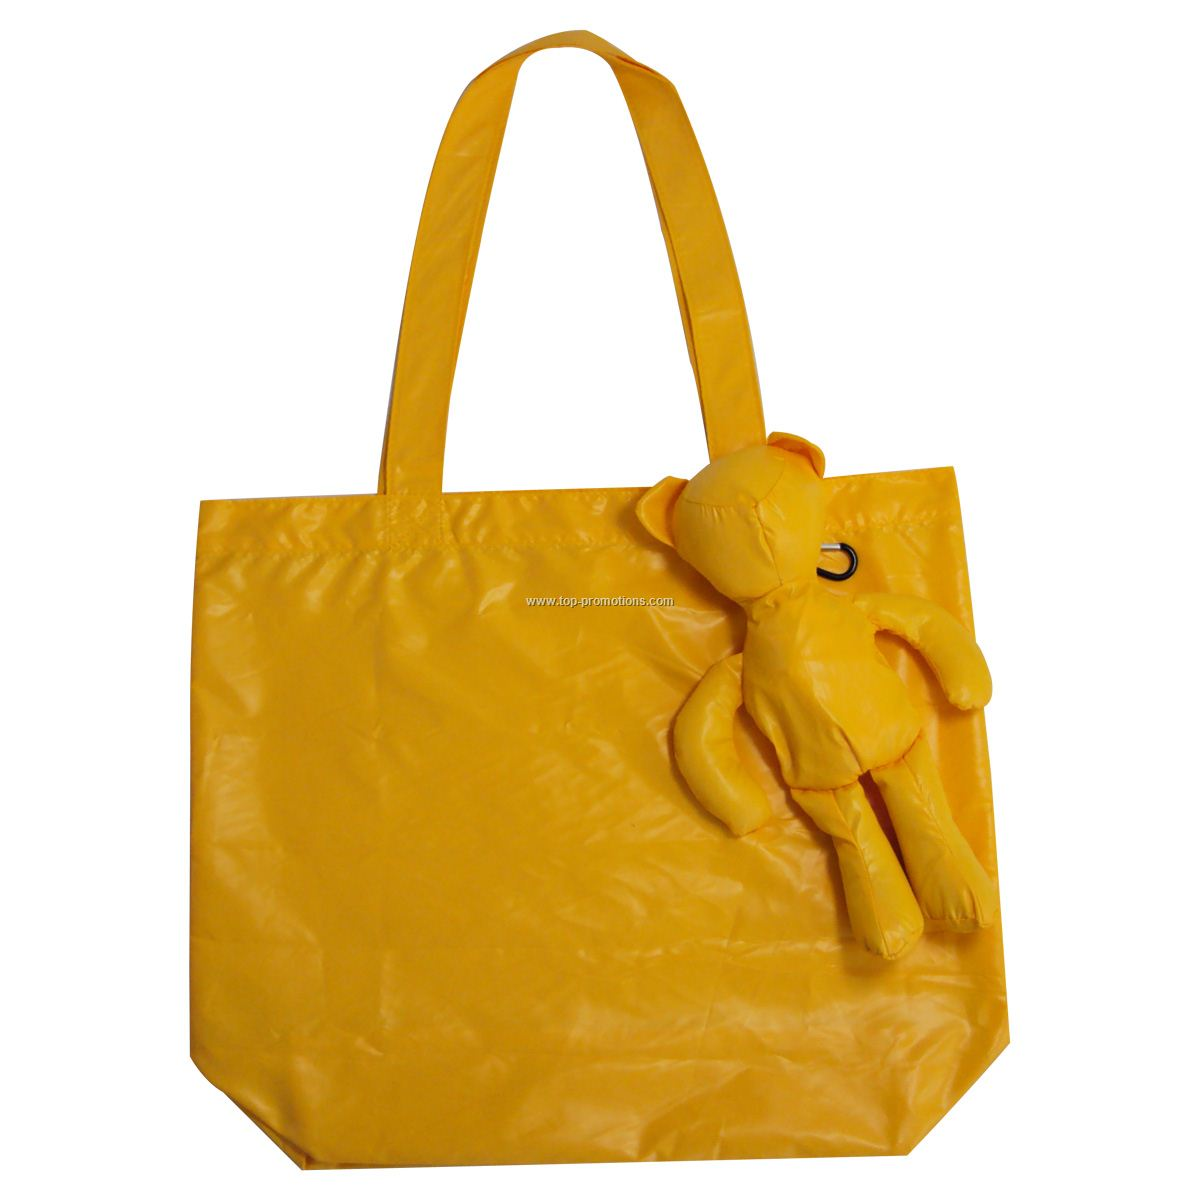 Bear Shopping bags